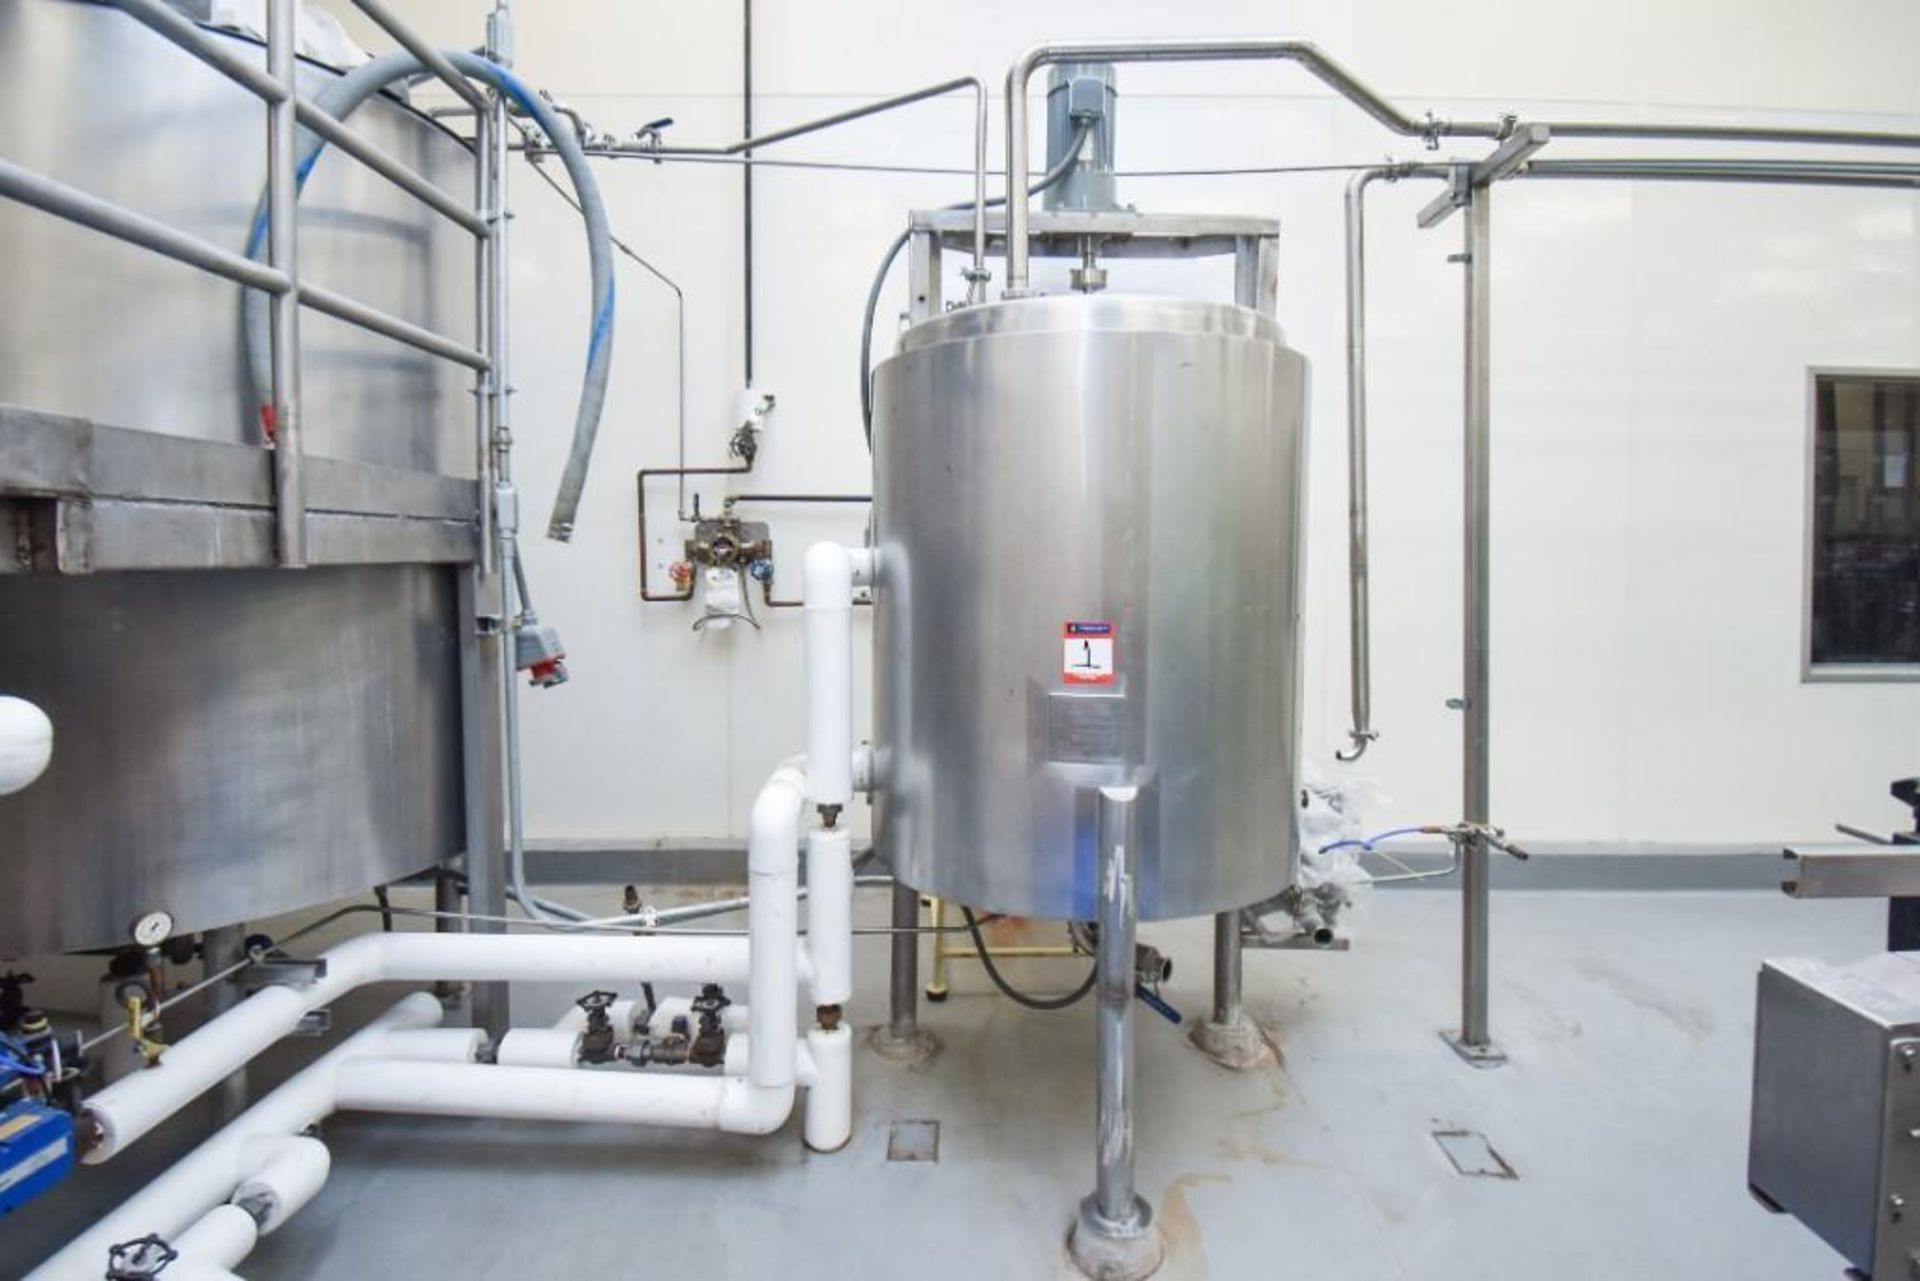 3 Jacketed Liquid Mixing Tank System - Image 16 of 21